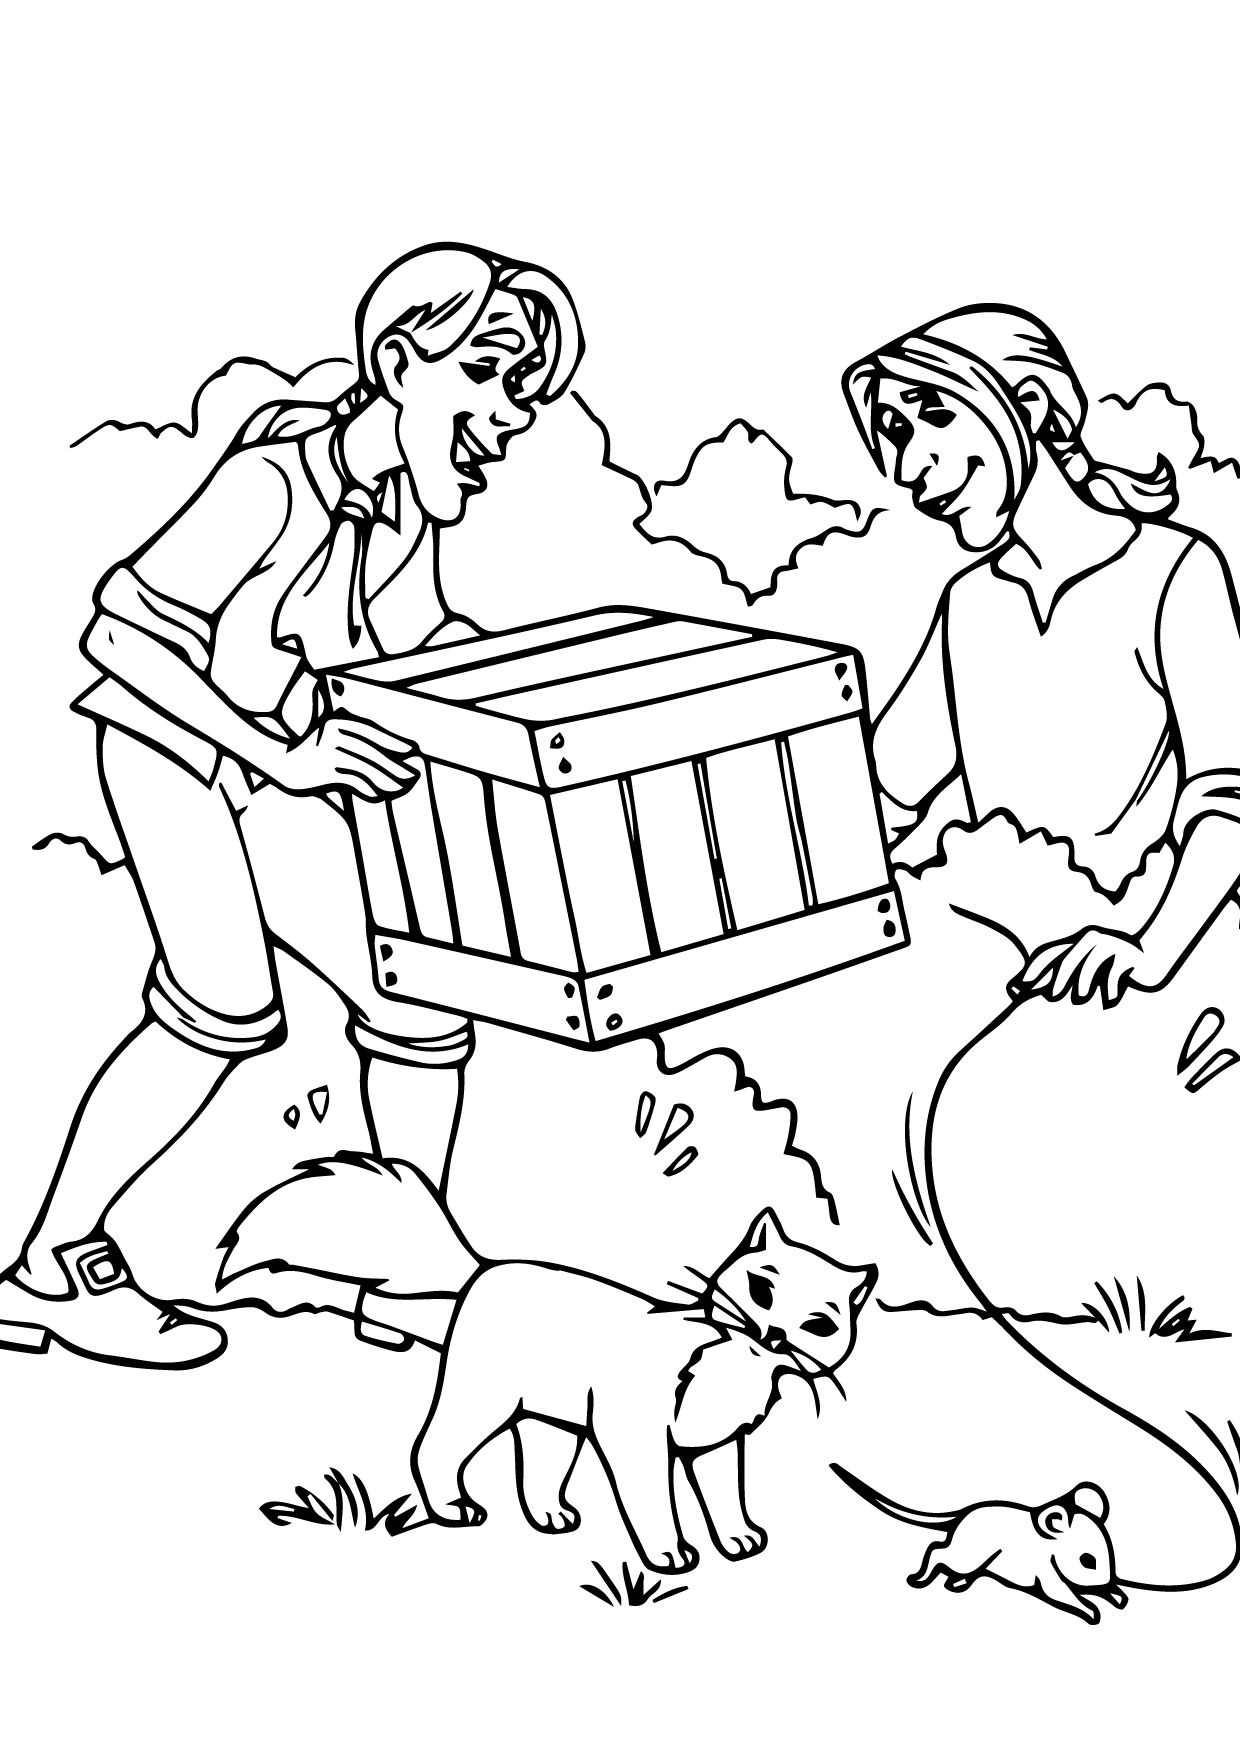 Cool Coloring Page 22 09 01 Check More At